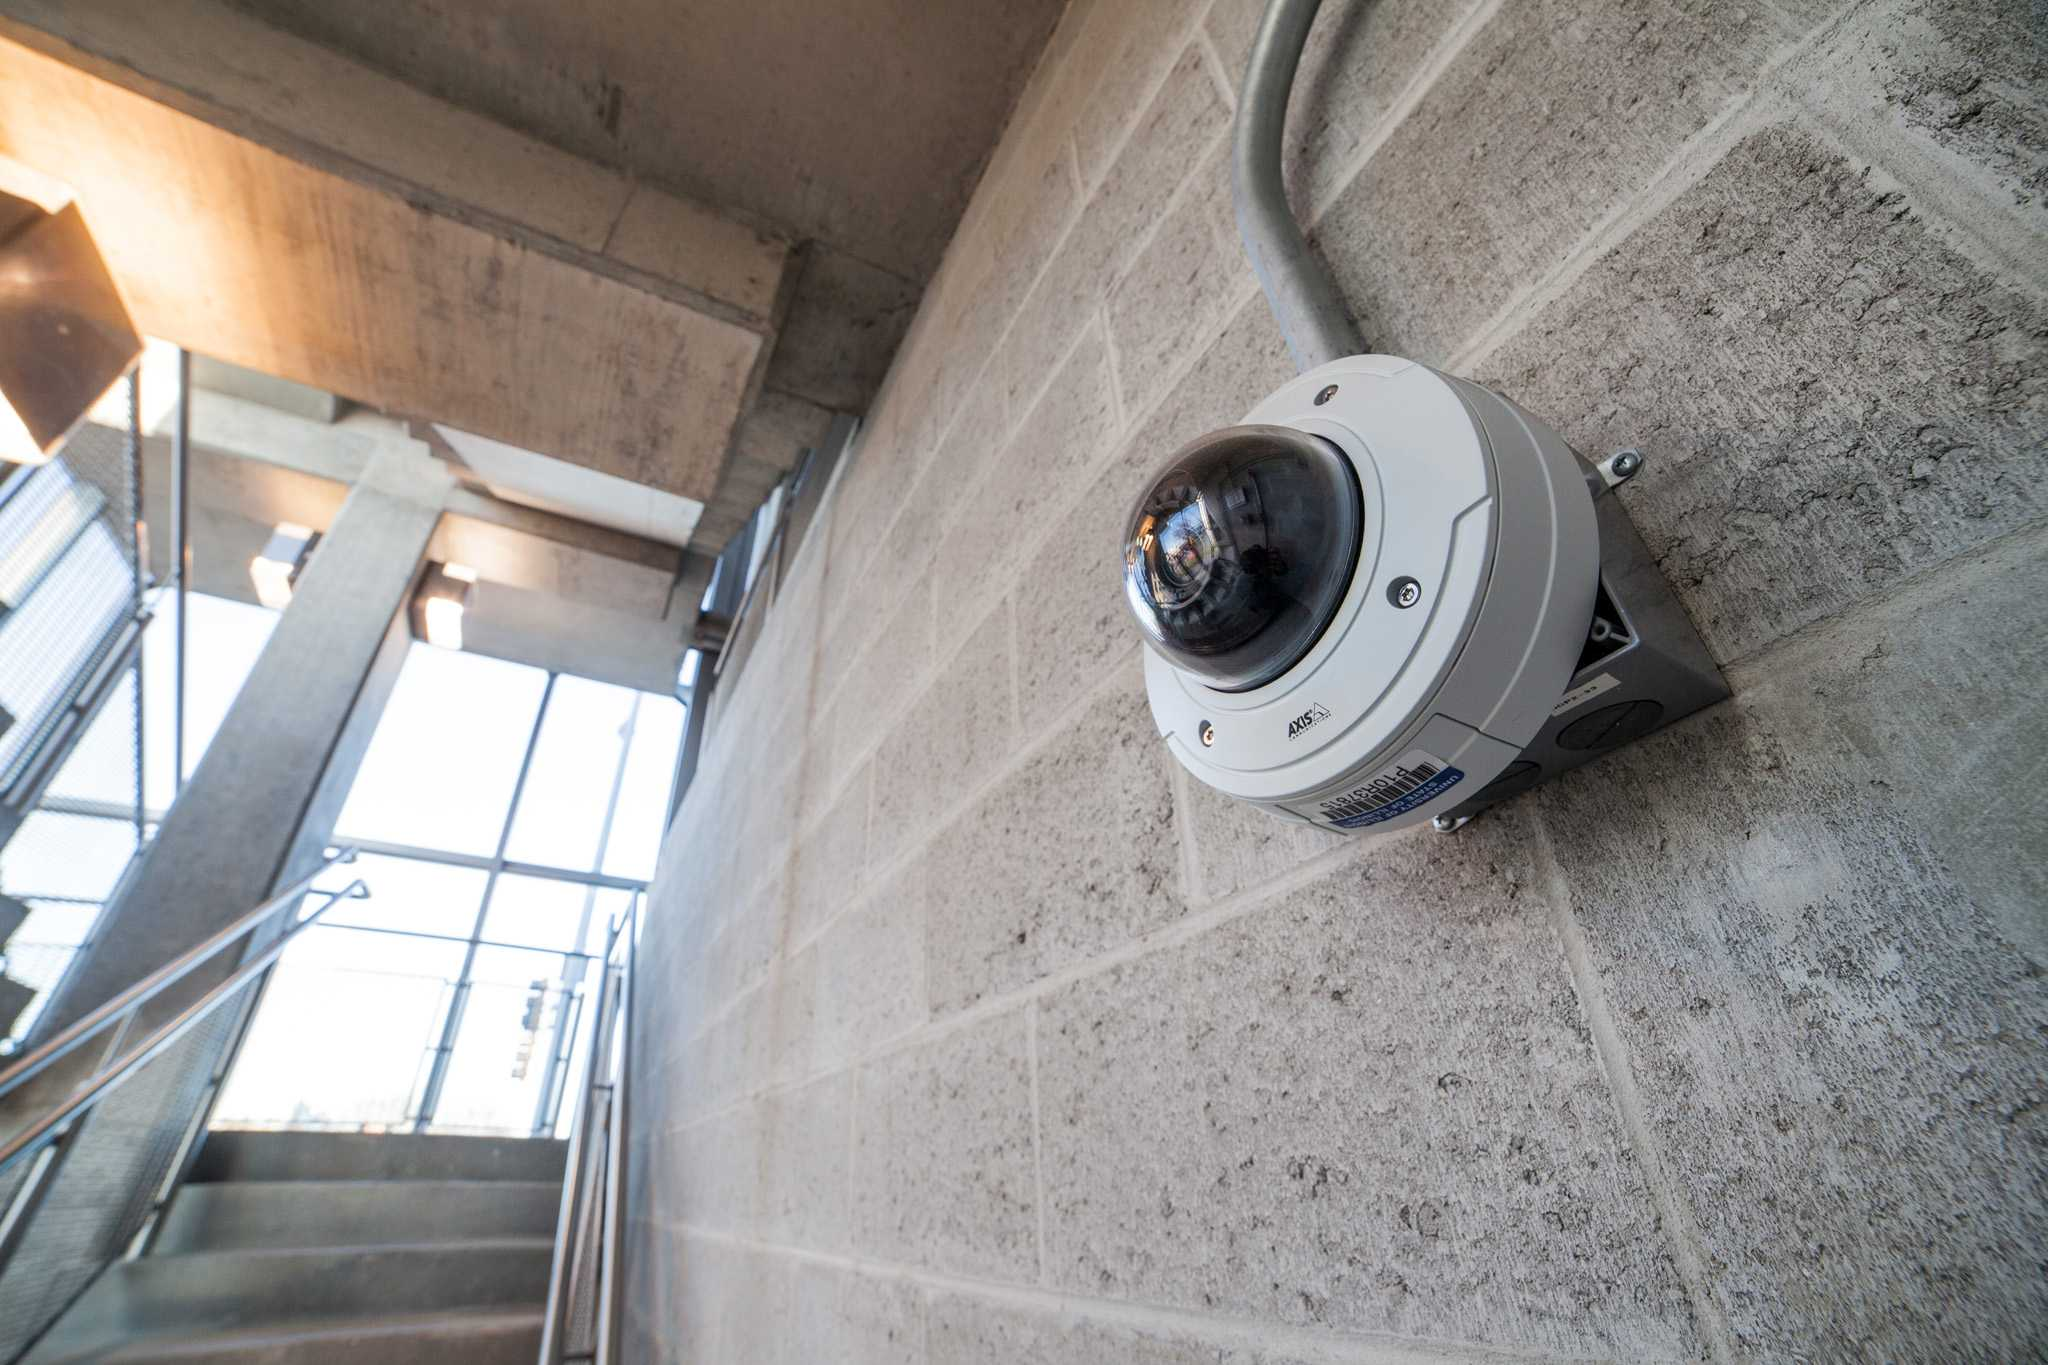 A security camera seen on the wall of a parking garage at the northeast part of the campus at the University of Illinois Urbana Champaign on Sunday, April 10, 2016.